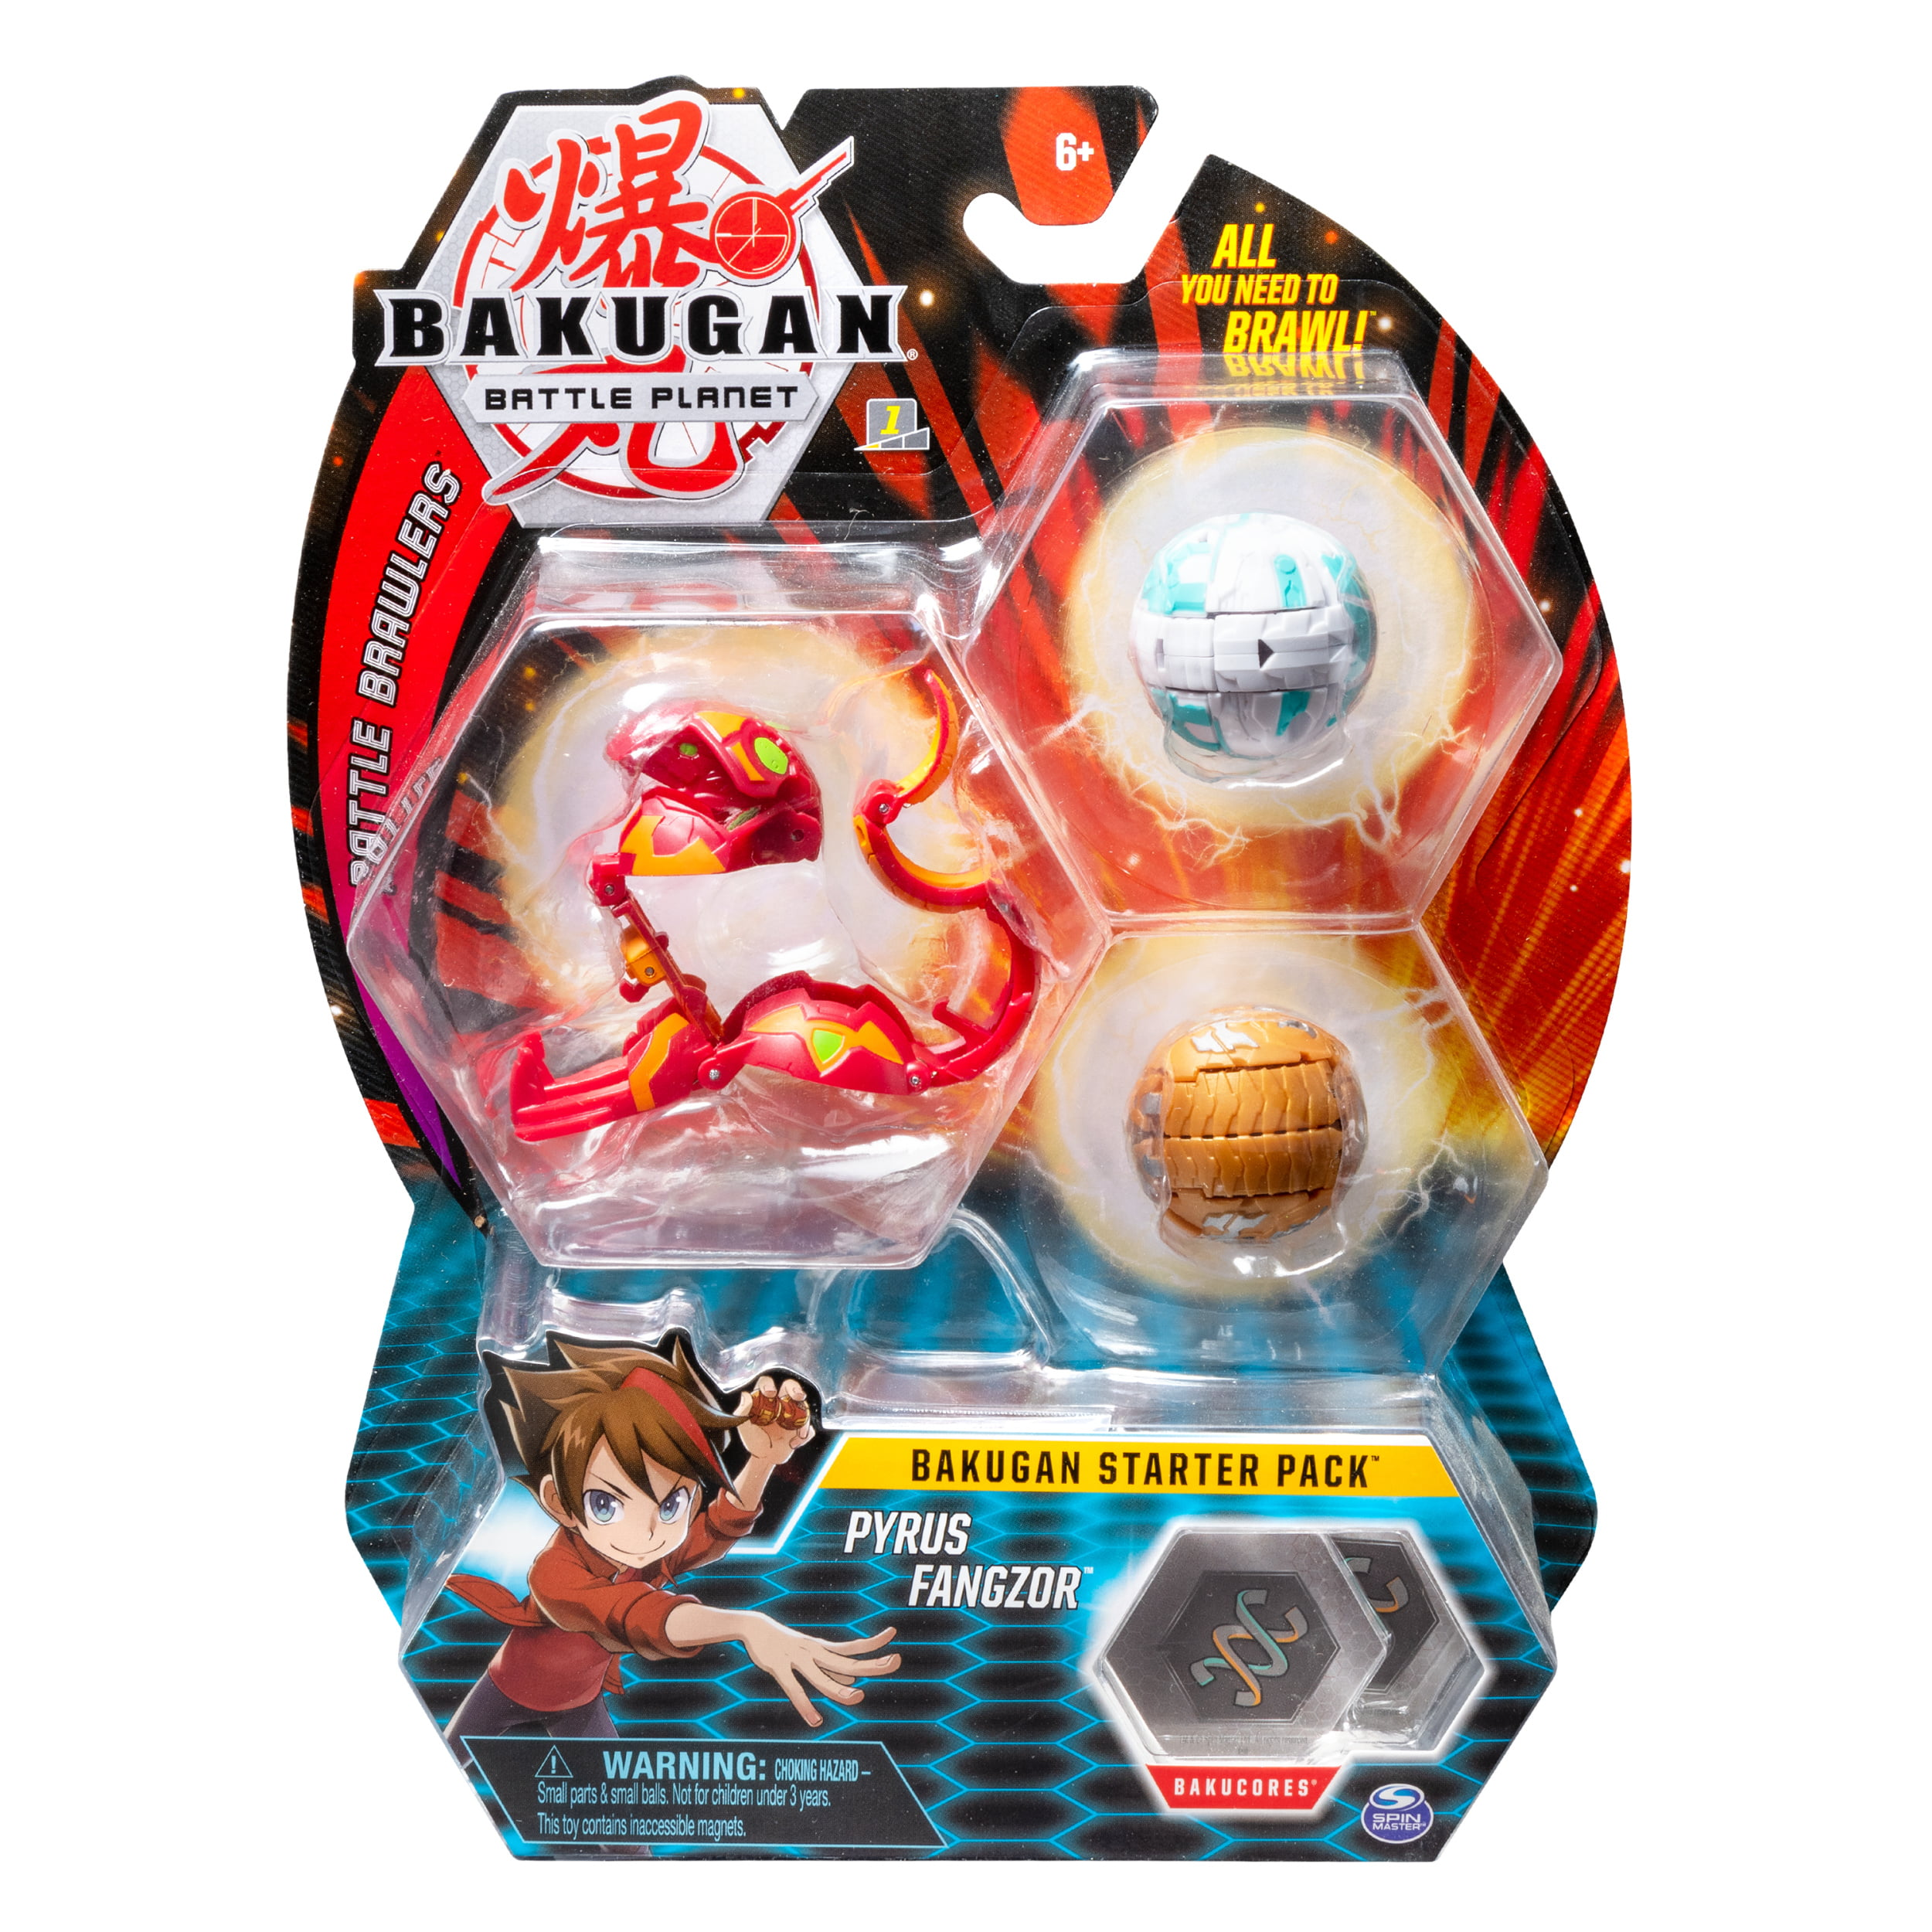 Bakugan Starter Pack 3-Pack, Pyrus Fangzor, Collectible Action Figure Sets, for Ages 6 and Up